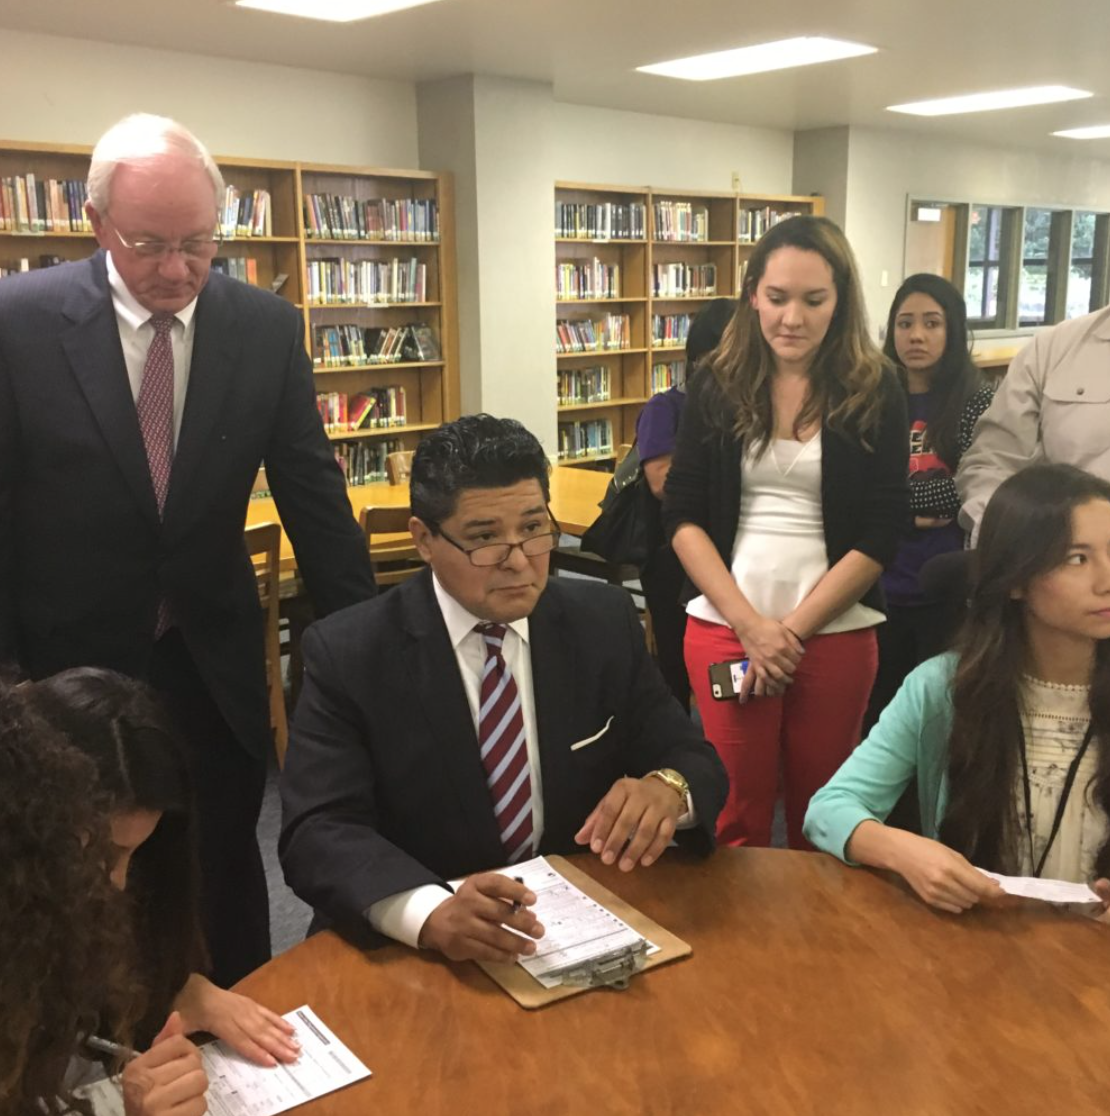 Richard Carranza, Houston ISD Superintendent, a recent arrival from California, registers as a Texas voter alongside students at Sam Houston Math, Science, and Technology Center. Mike Sullivan, Harris County Tax Assessor-Collector, looks on.